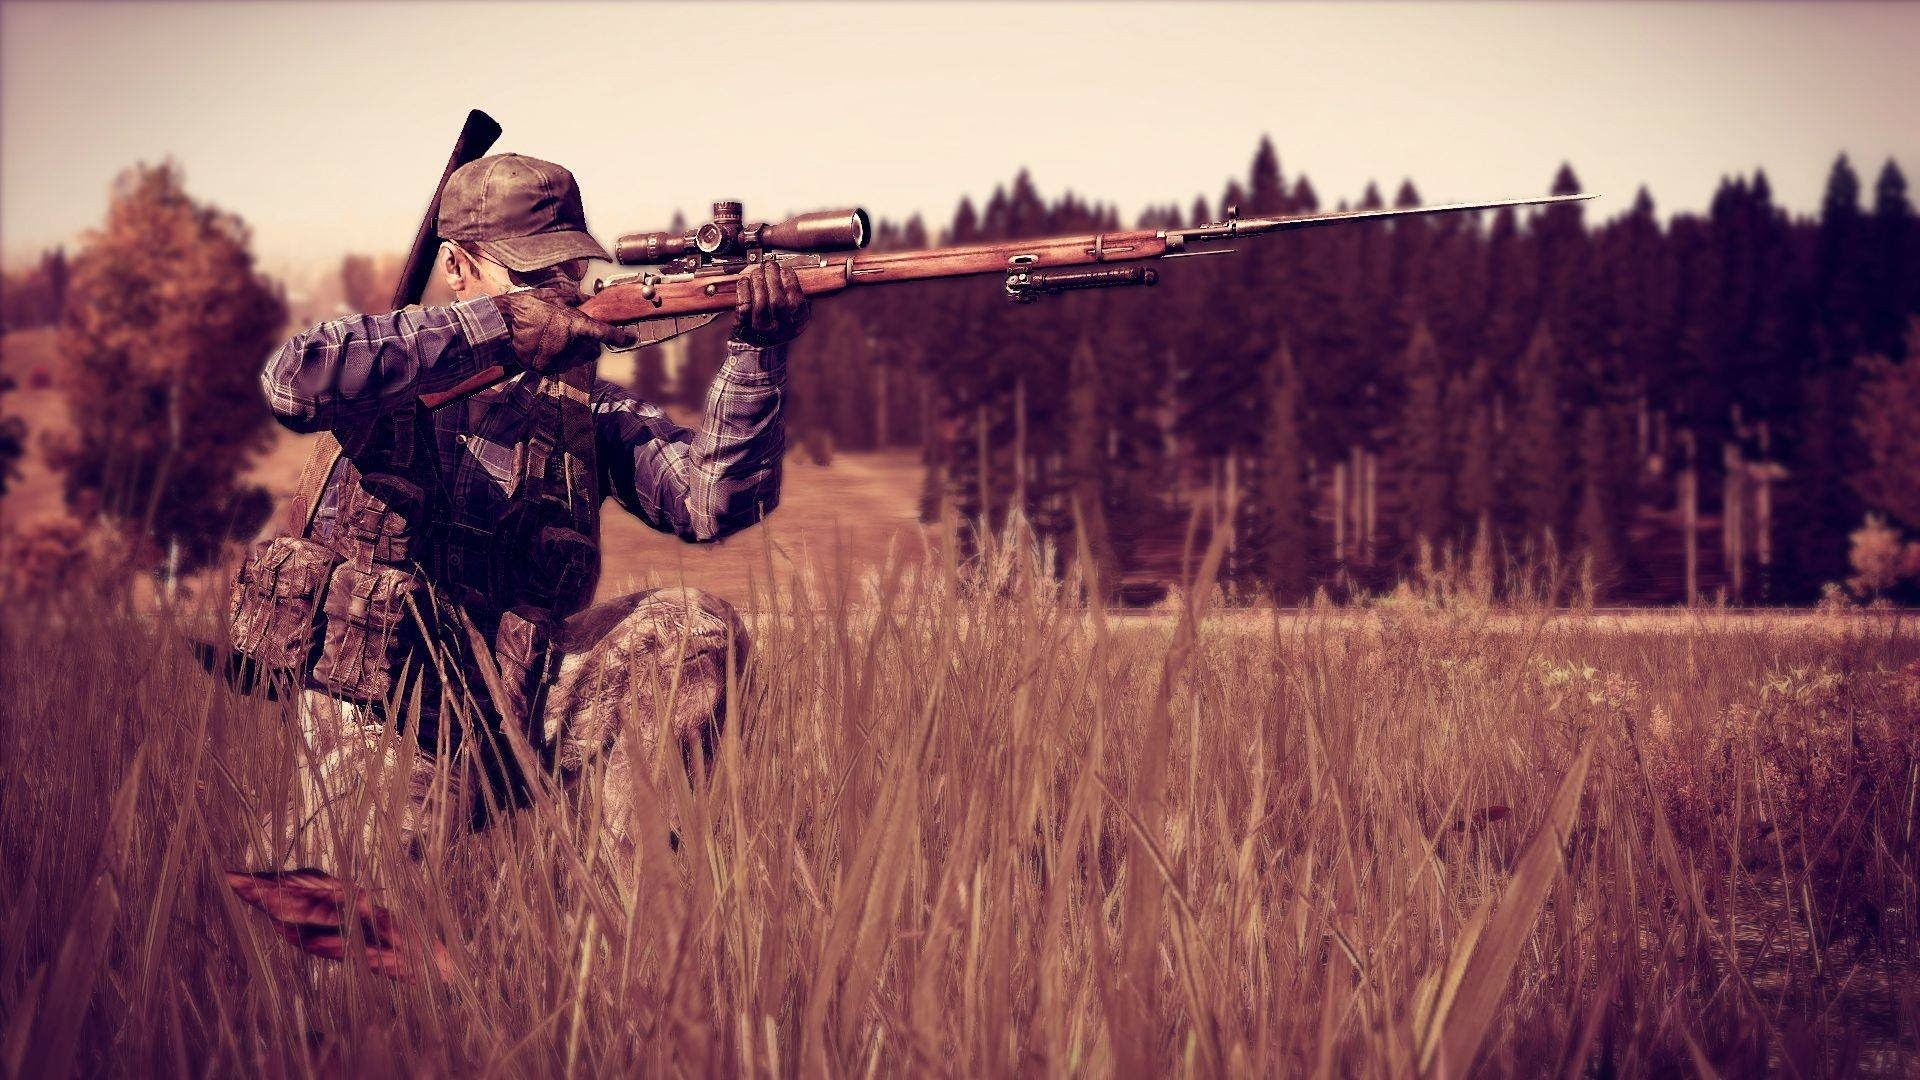 Dayz Wallpaper ·① Download Free Stunning HD Wallpapers For